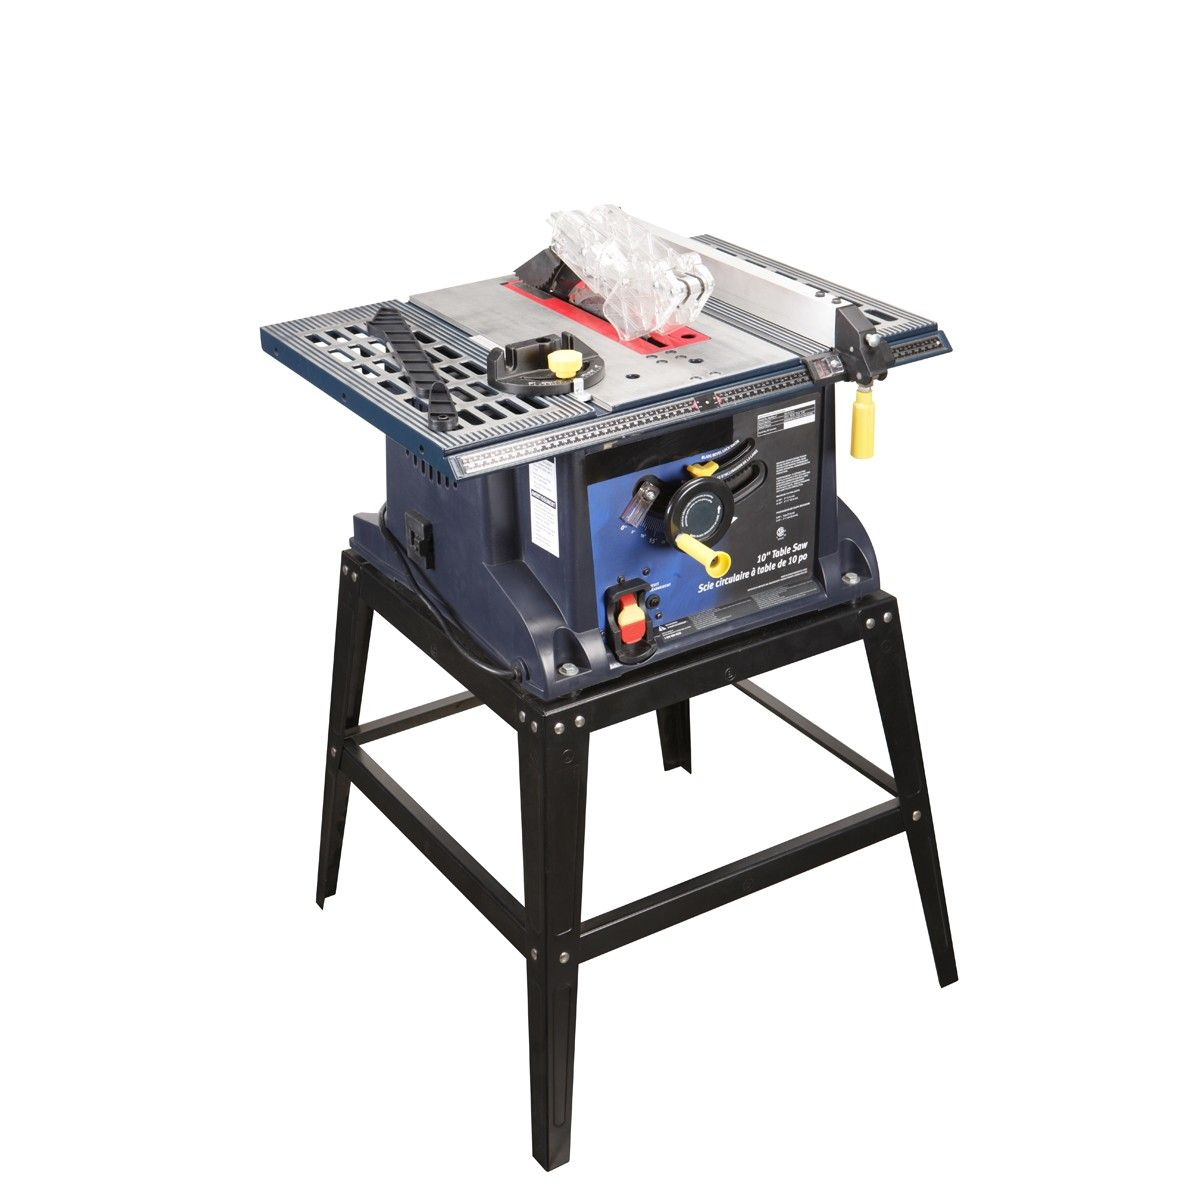 Captivating mastercraft table saw wiring diagram 120v pictures sears 10 table saw switch wiring diagram oldsmobile achieva fuse greentooth Choice Image